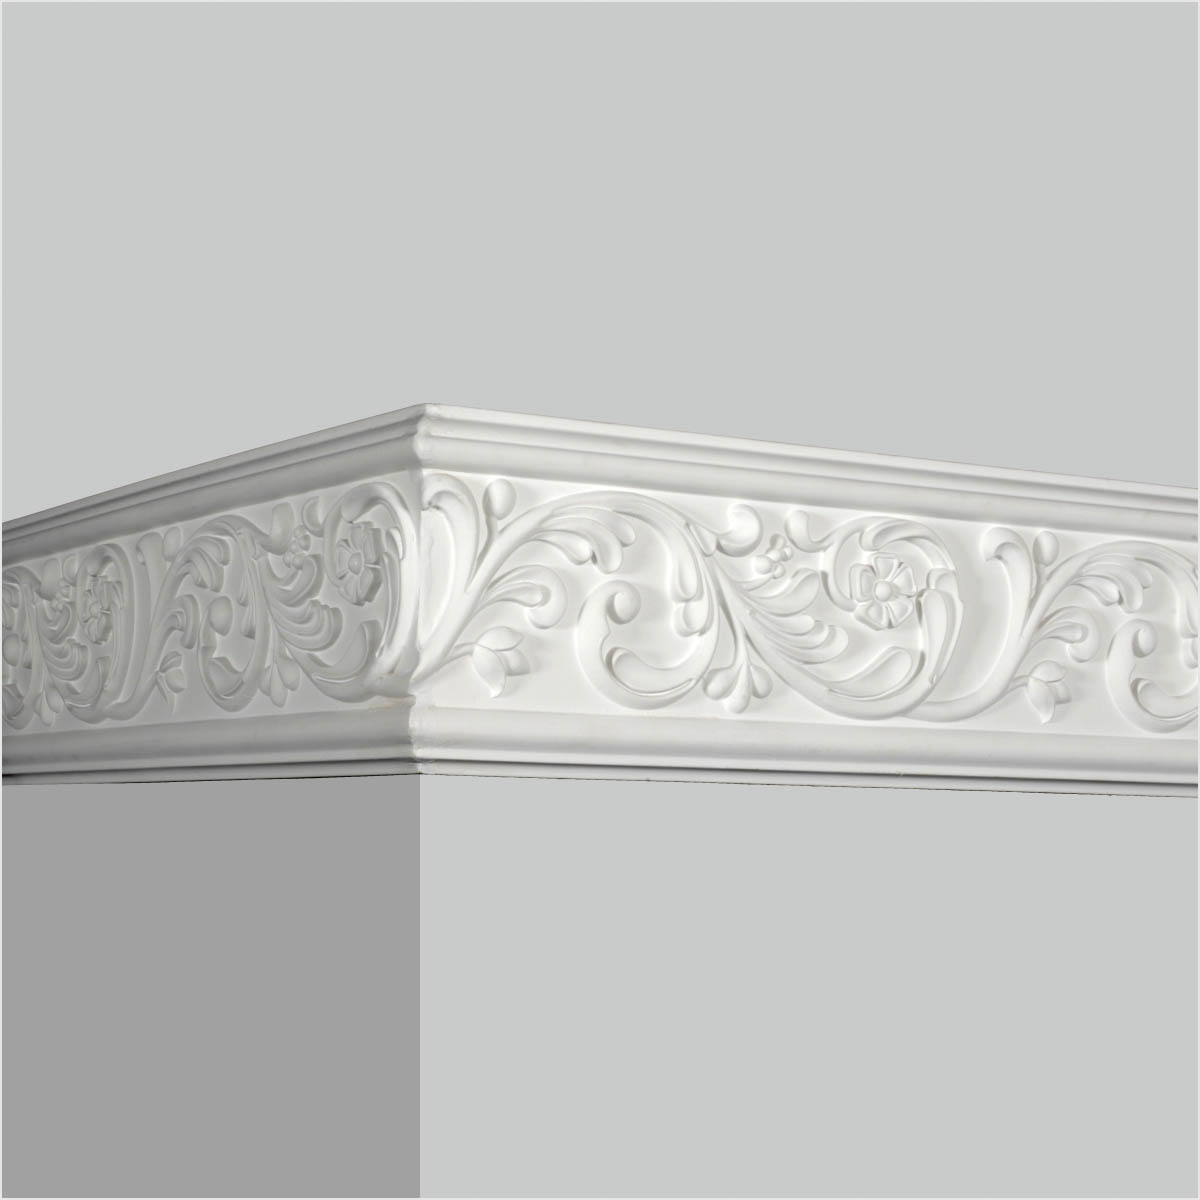 Polyurethane commercial chair rail molding for sale